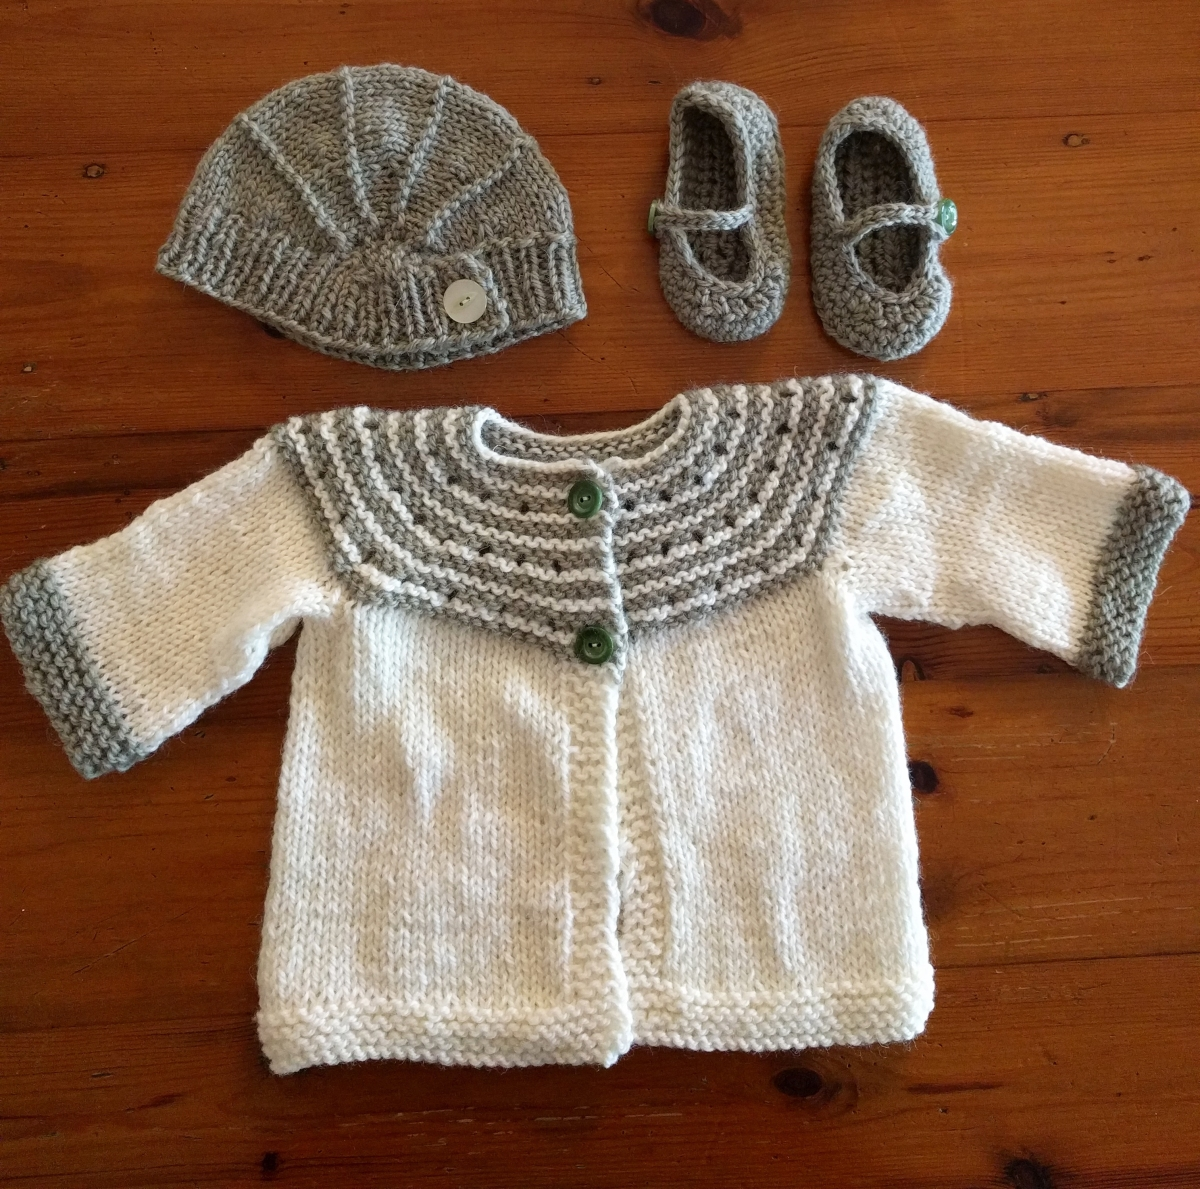 An Extensive Knitted Layette, and Reflections on a Life Unlived